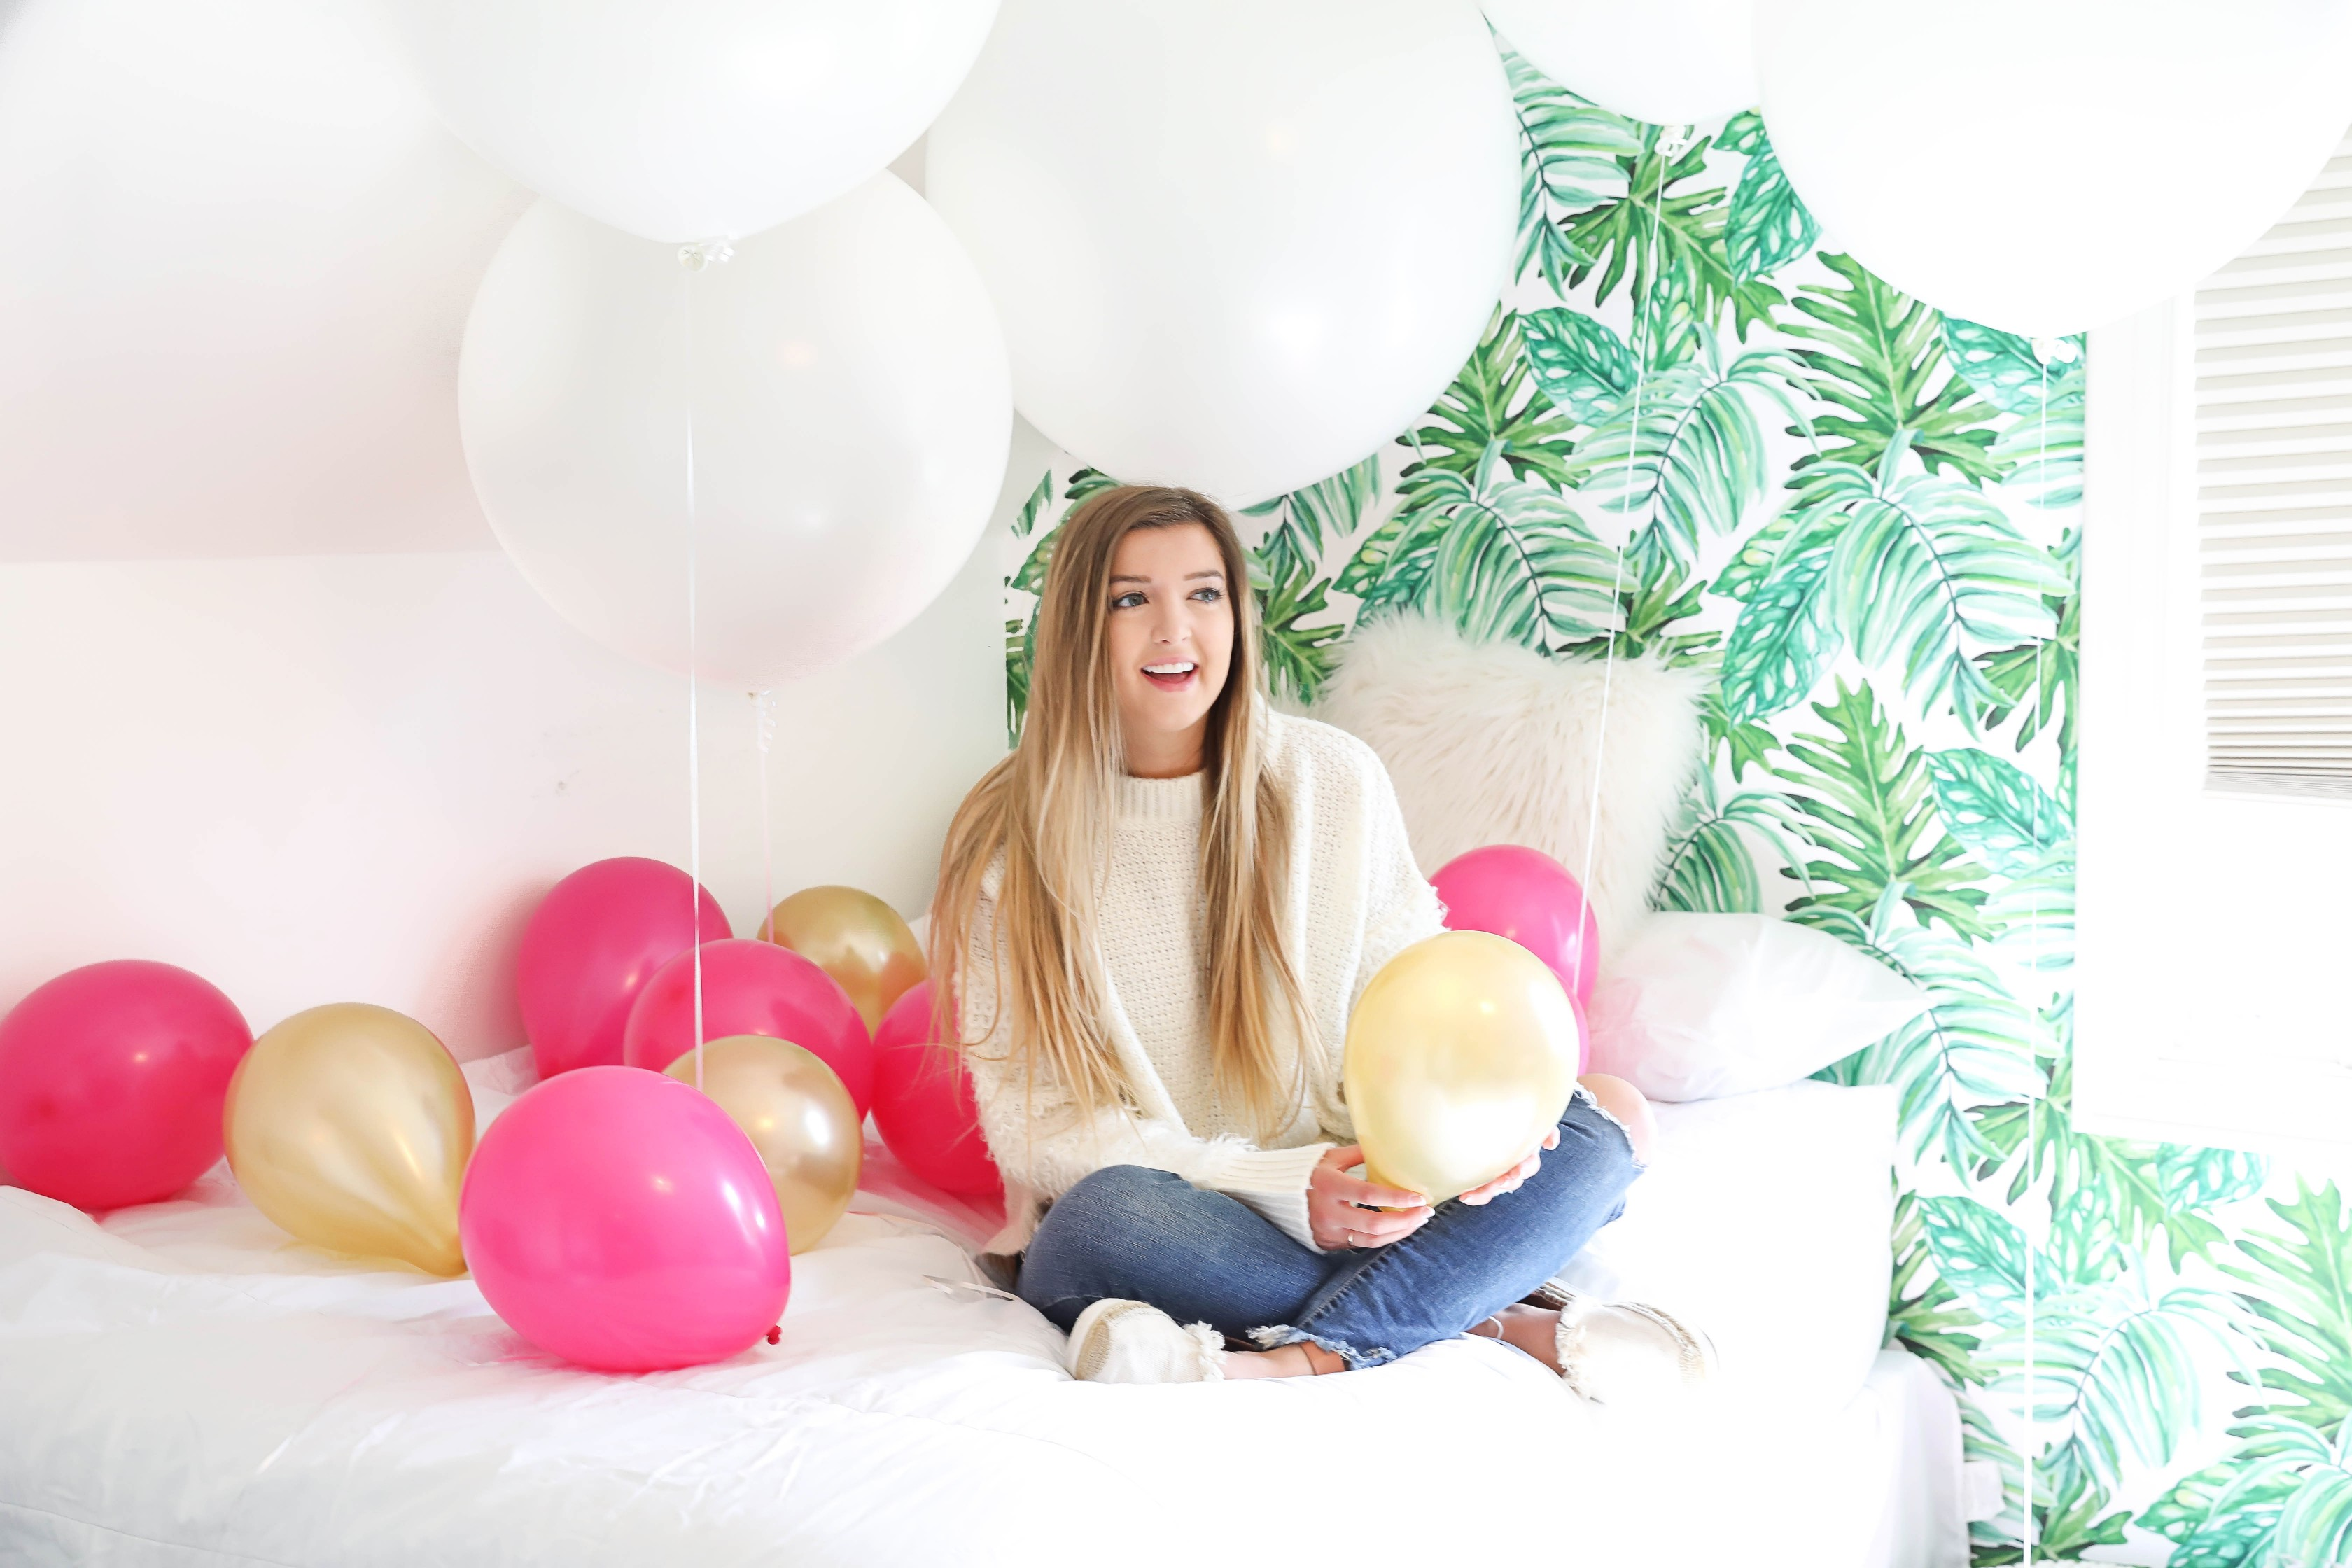 Birthday photoshoot with balloons on the bed fashion blog daily dose of charm by lauren lindmark